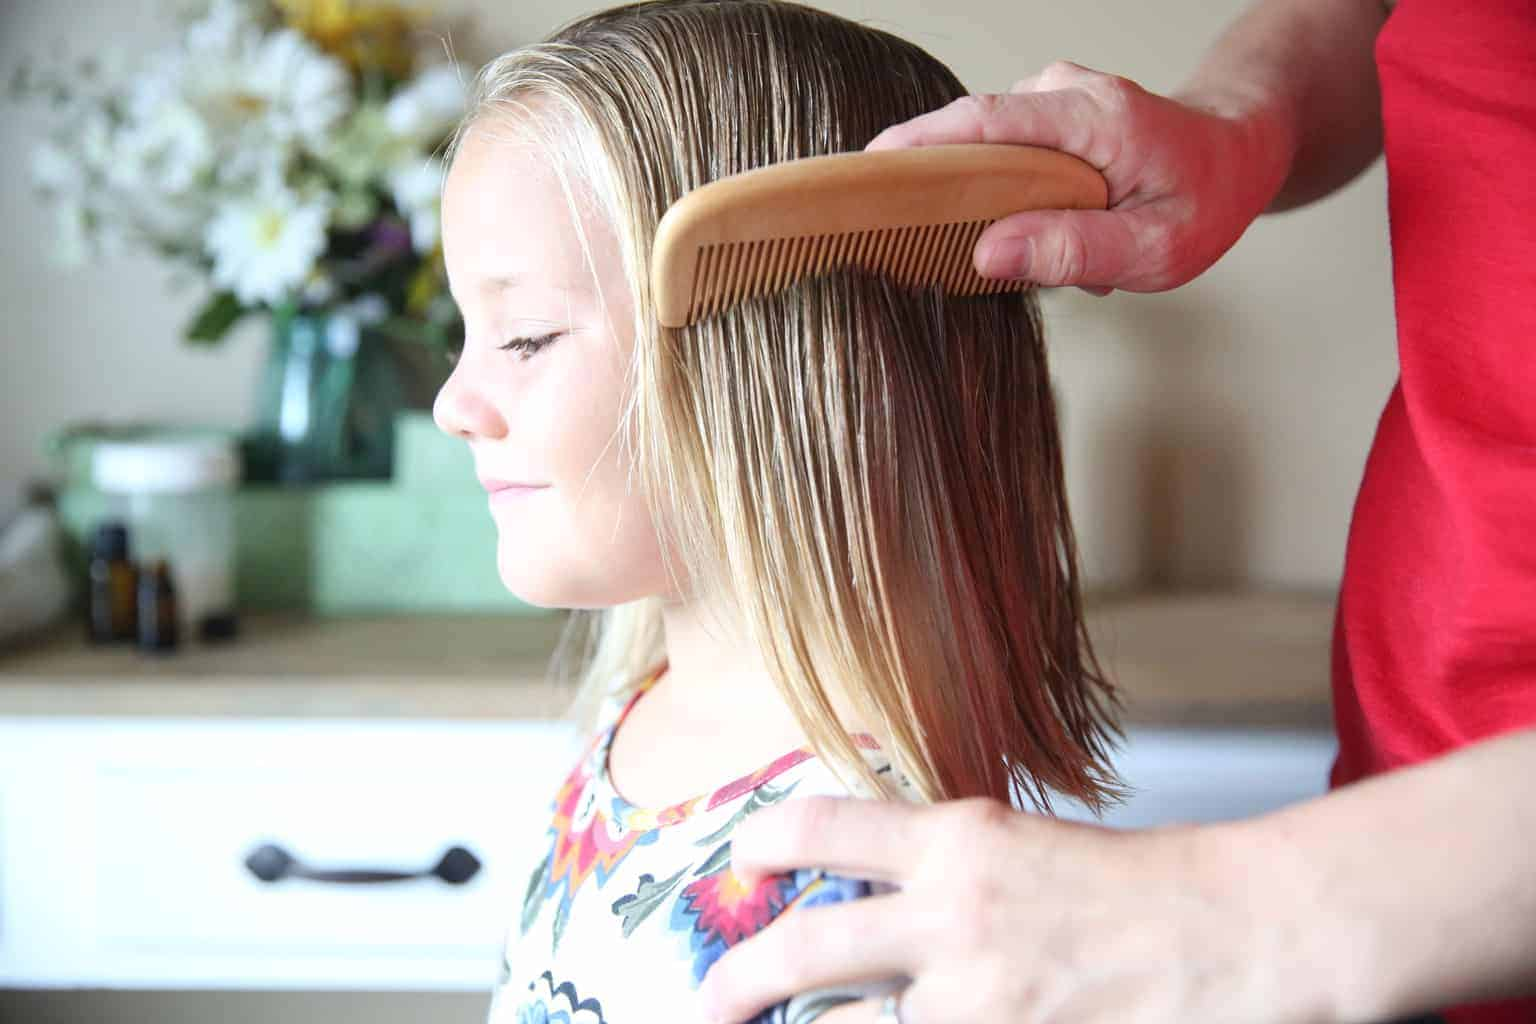 combing out hair after spraying with diy hair detangler spray